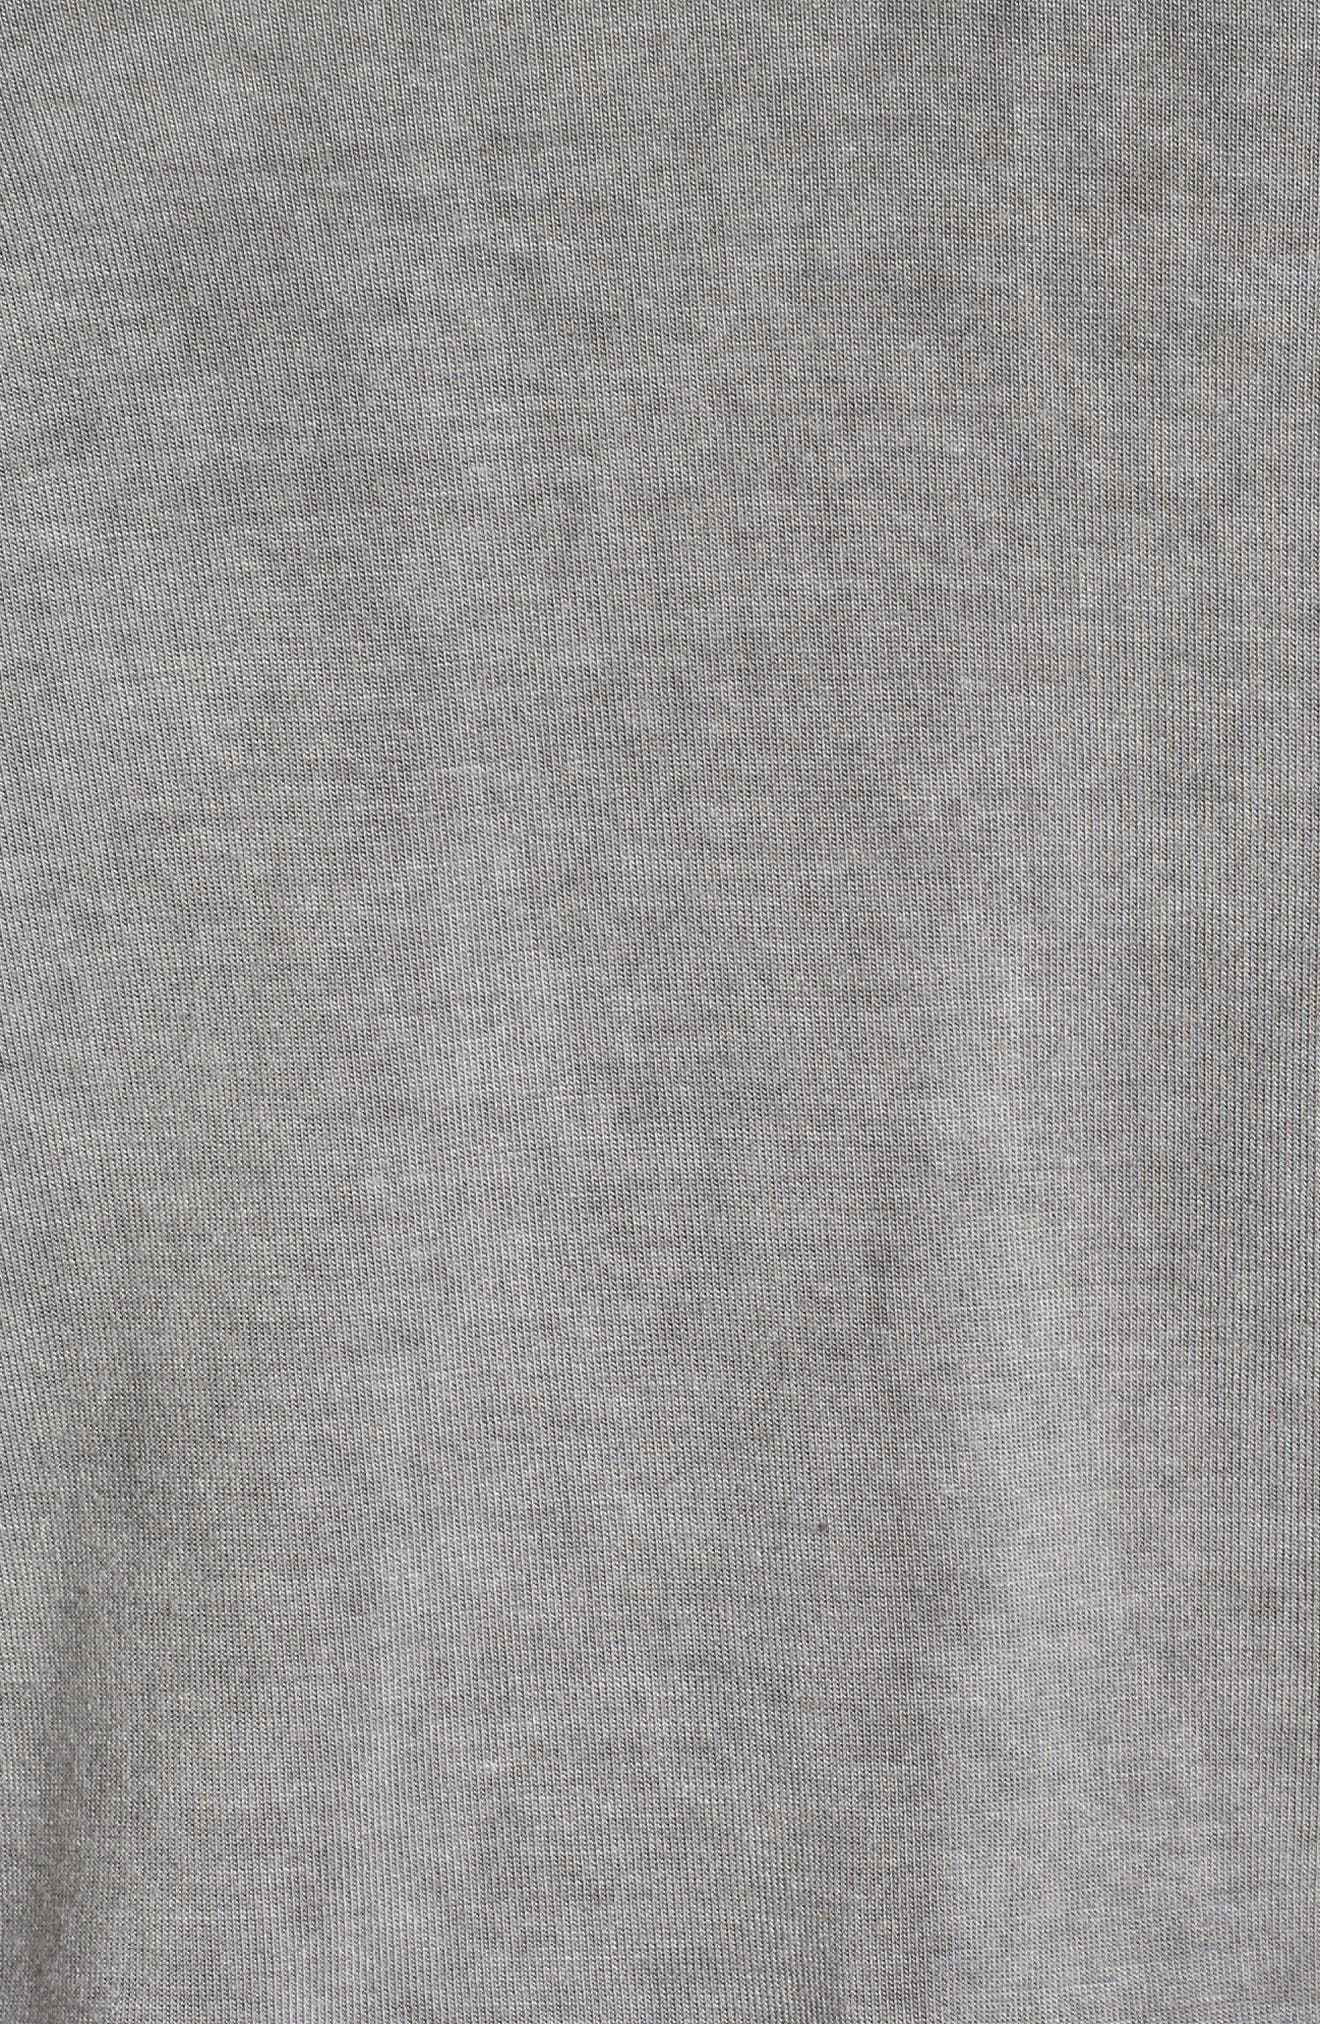 Washed Tee,                             Alternate thumbnail 5, color,                             030